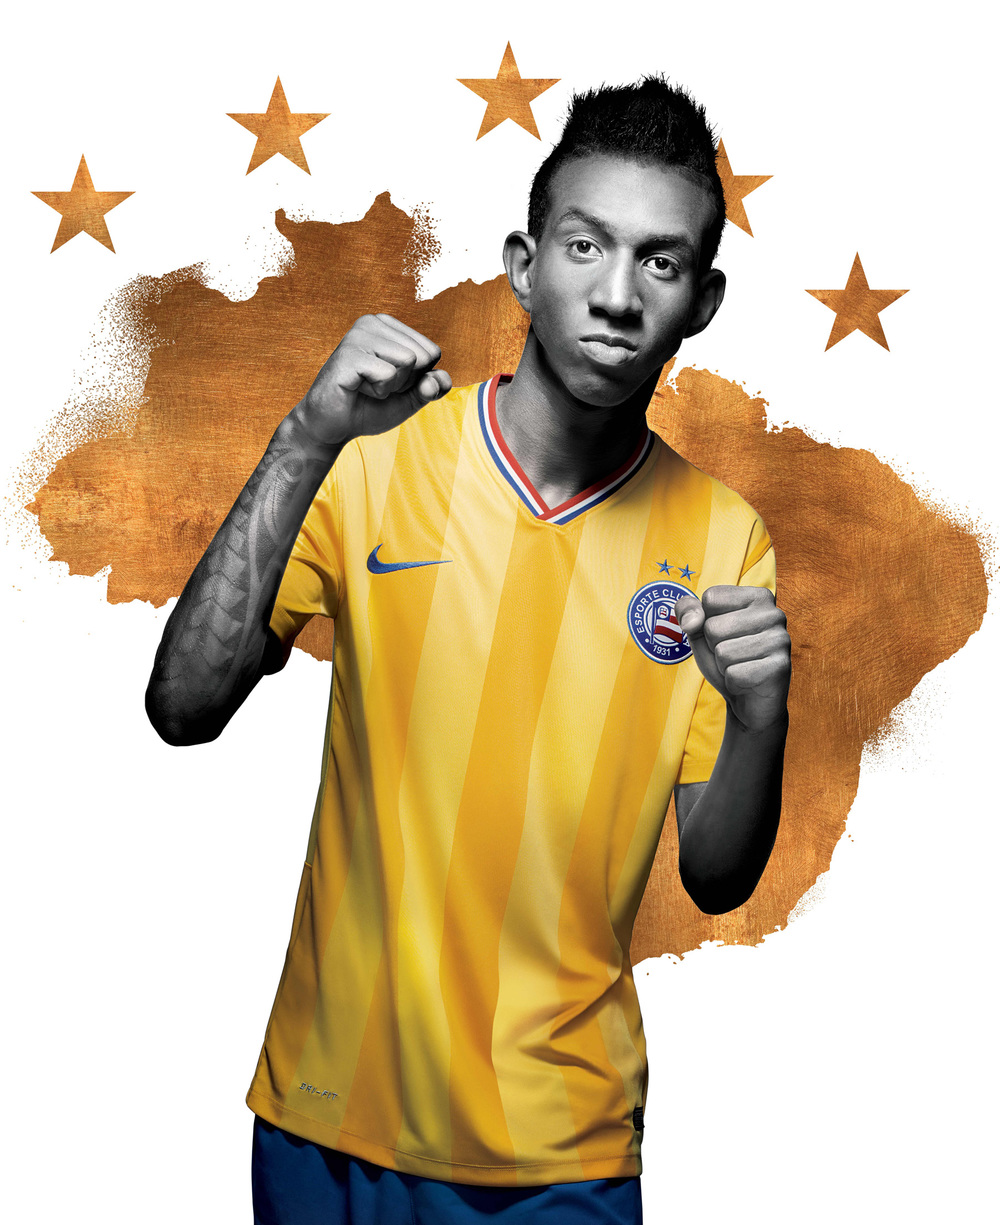 Bahia_Third_Yellow_Jersey_27298.jpg